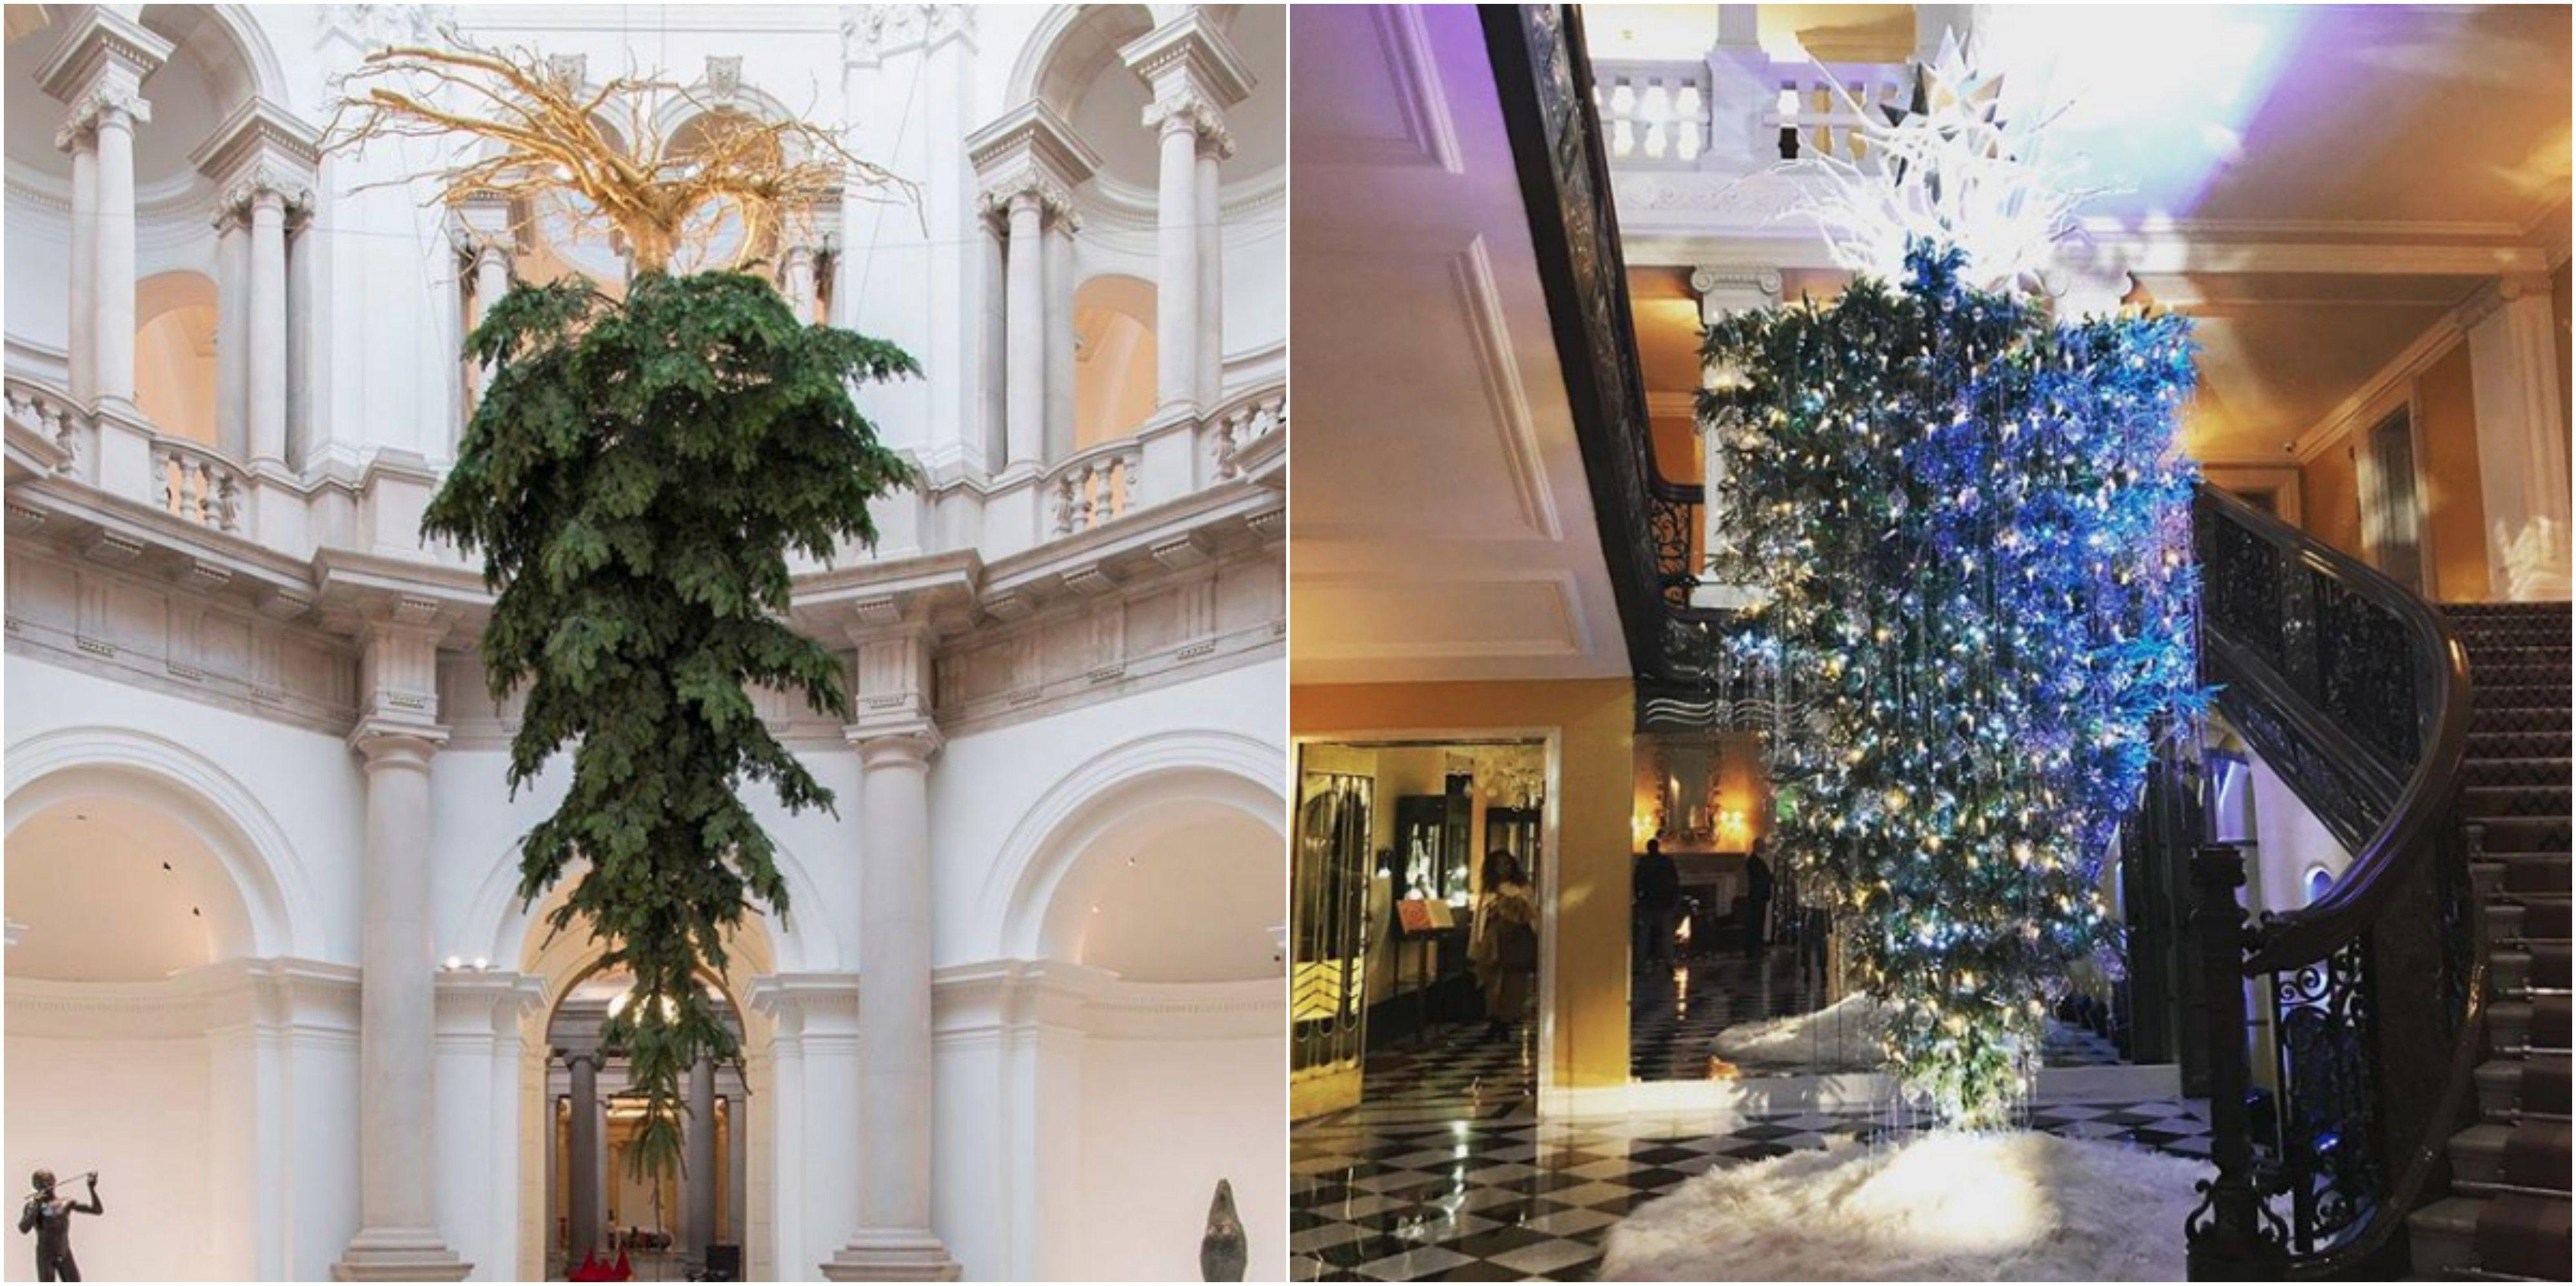 Why Upside Down Christmas Trees Are The New Trend